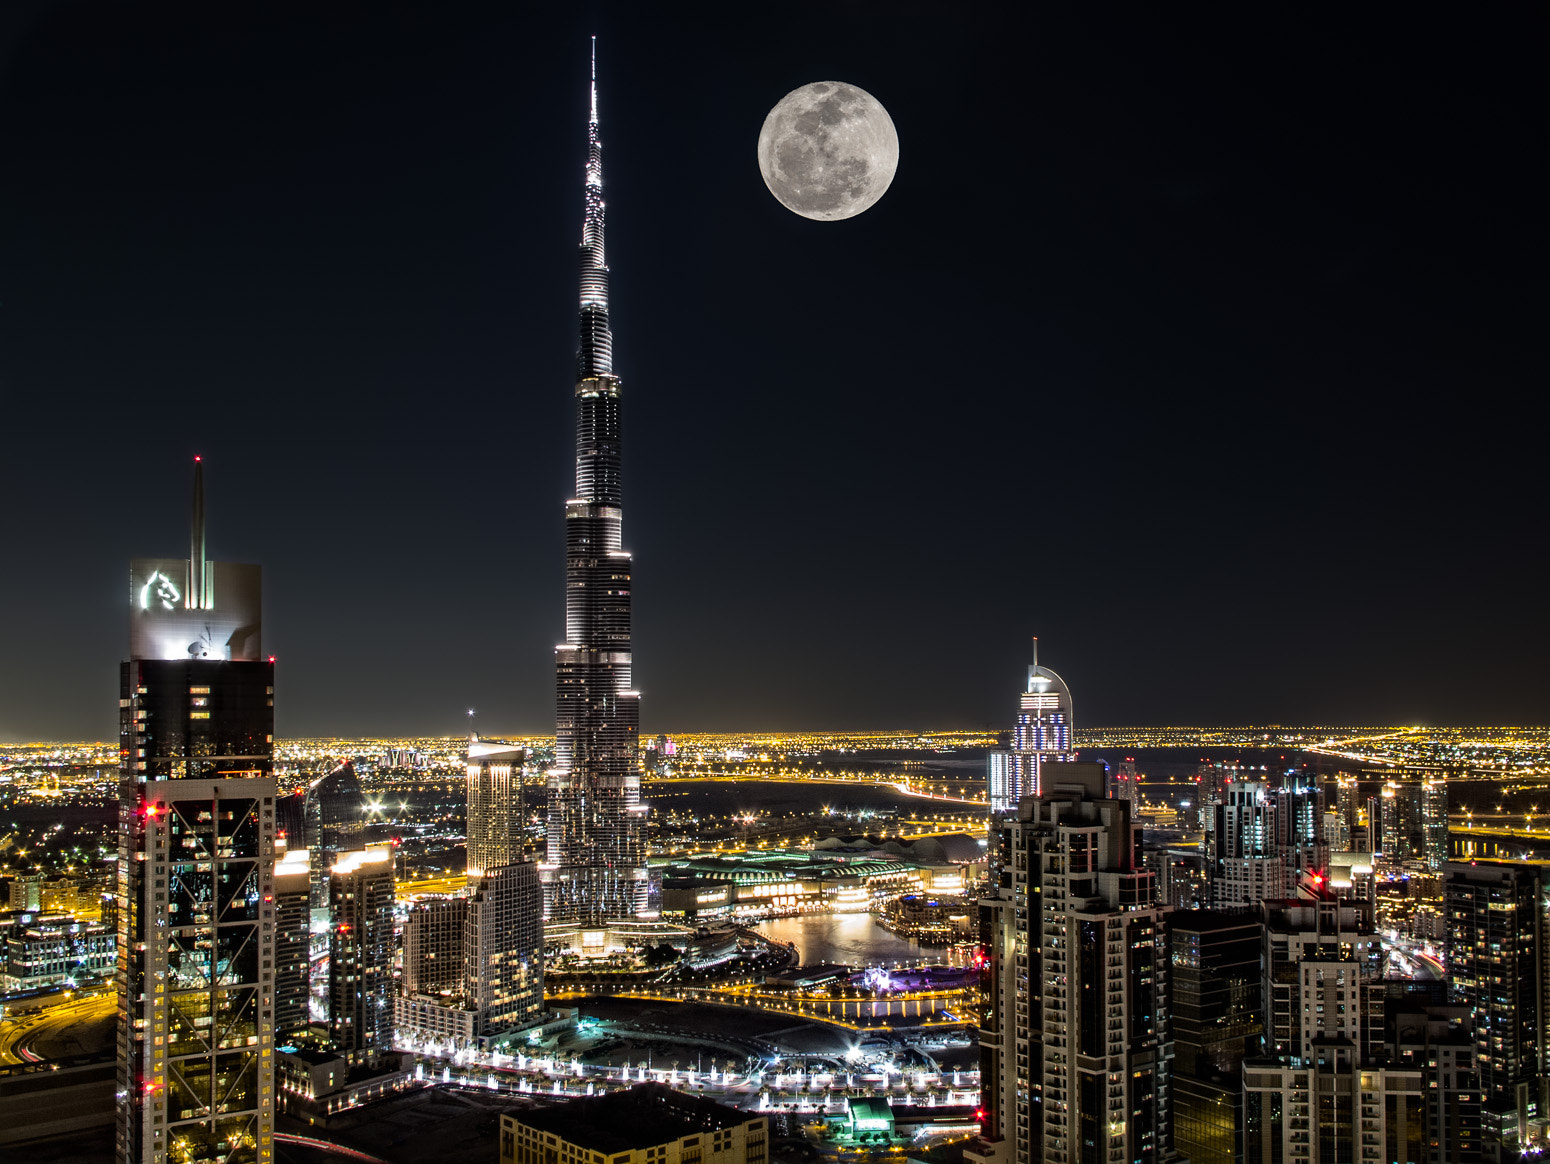 Photograph Full moon on the Burj by Giscard Matar on 500px